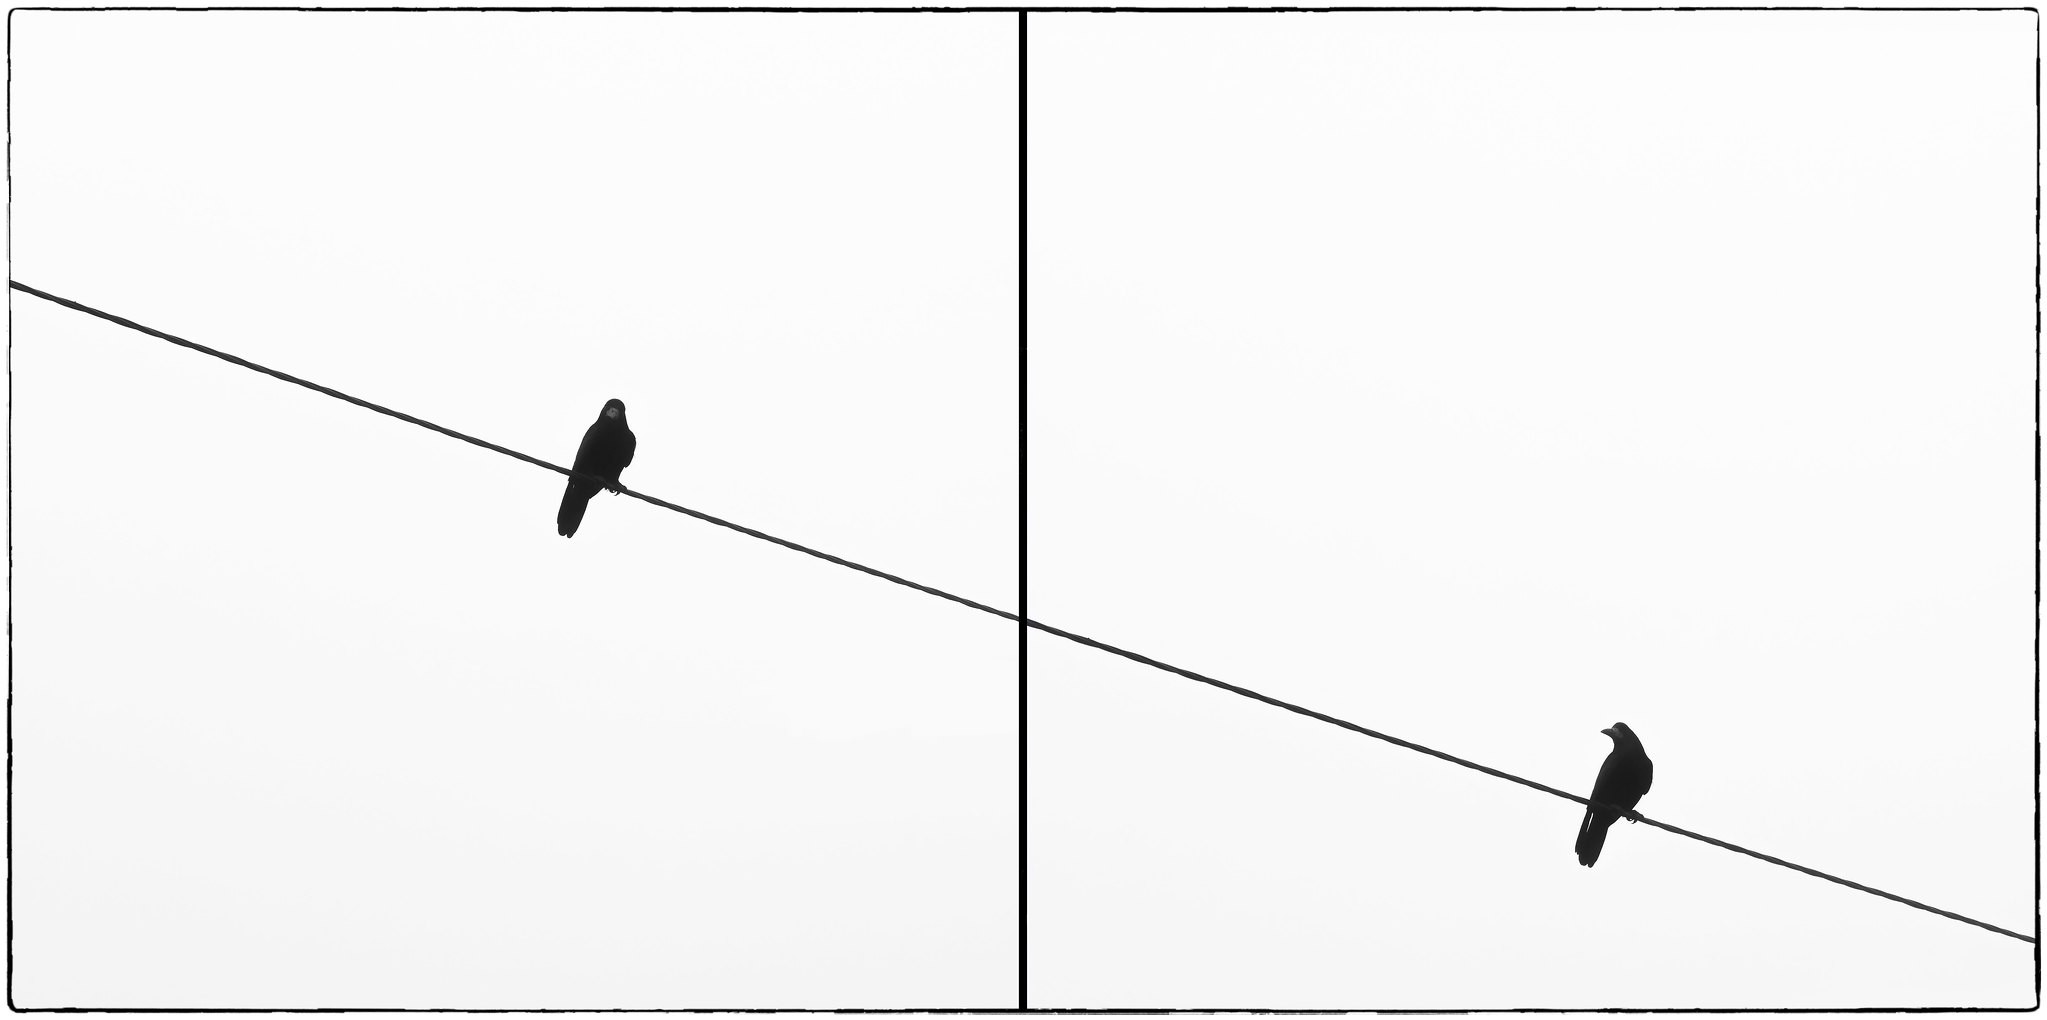 Two pictures of a bird on a wire looking back at itself.